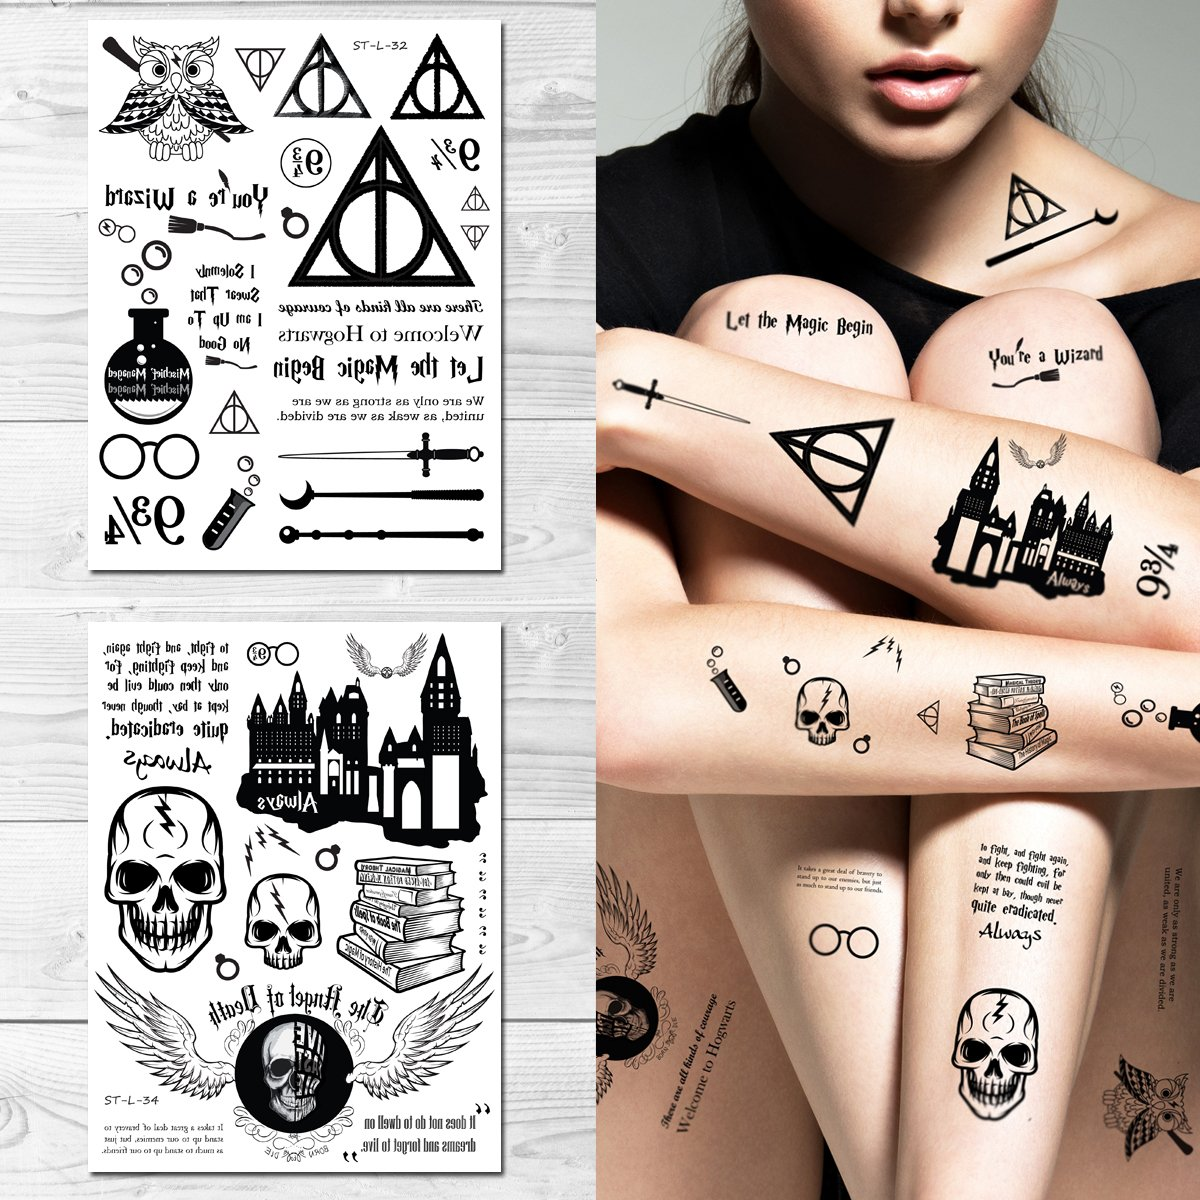 Amazon.com : Supperb Temporary Tattoos - Let the Magic Begin Wizard ...